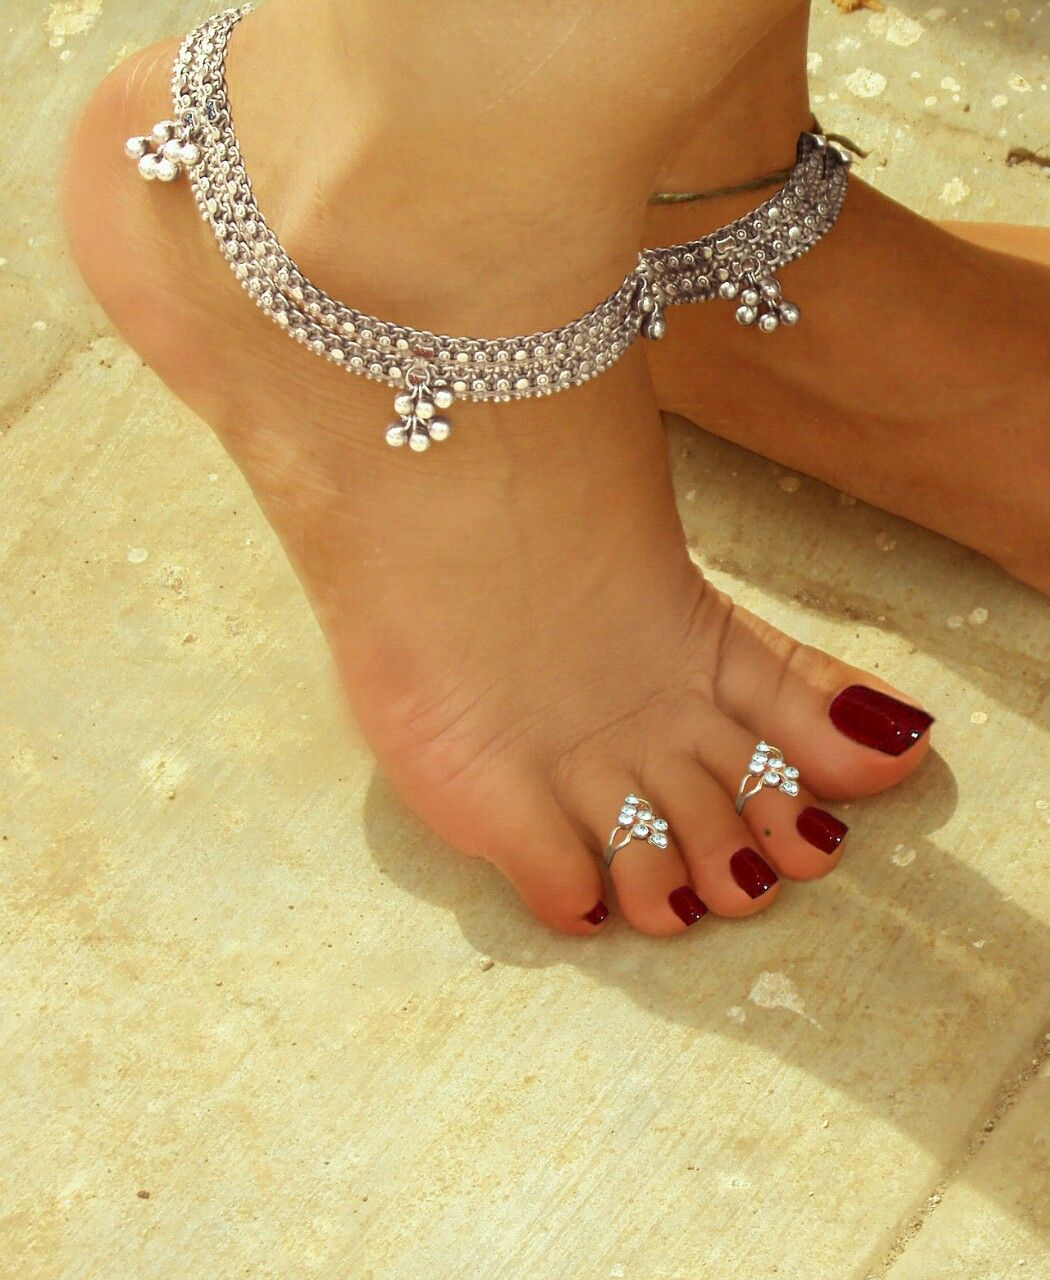 Lil Bling Spices Up Tootsies  Only Feet In 2019  Anklets -7109